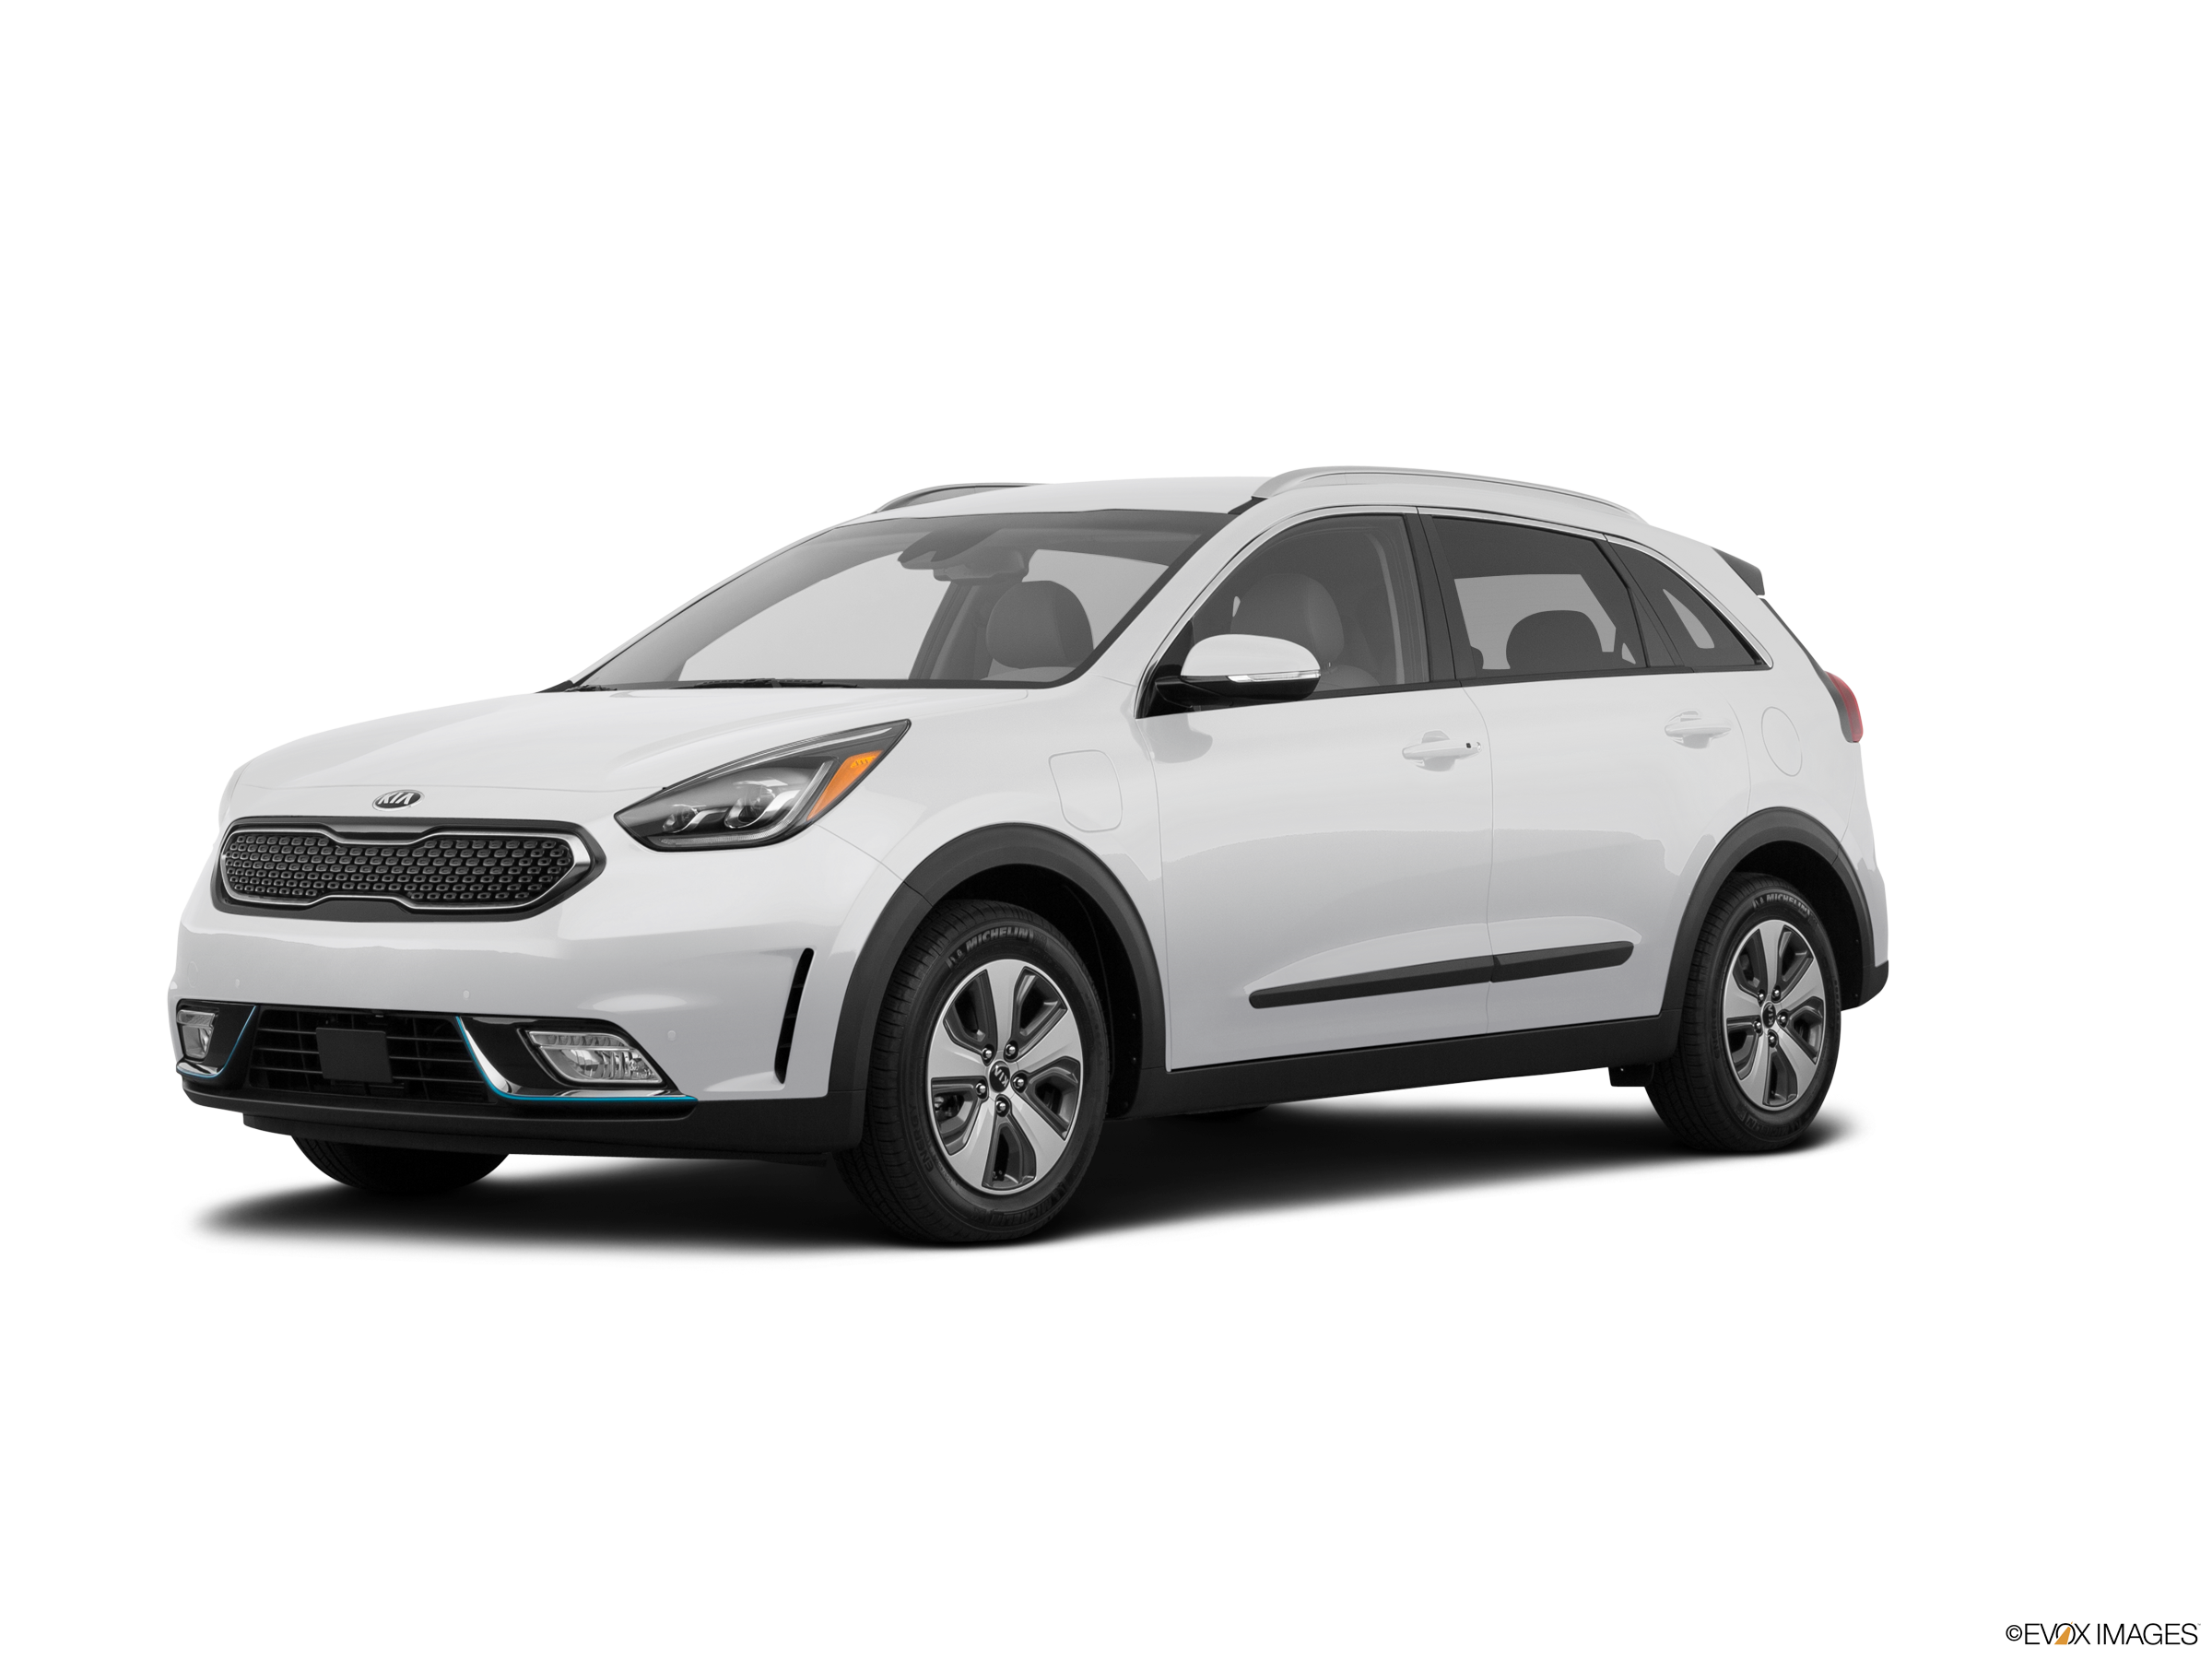 Top Consumer Rated Electric Cars of 2019 - 2019 Kia Niro Plug-in Hybrid